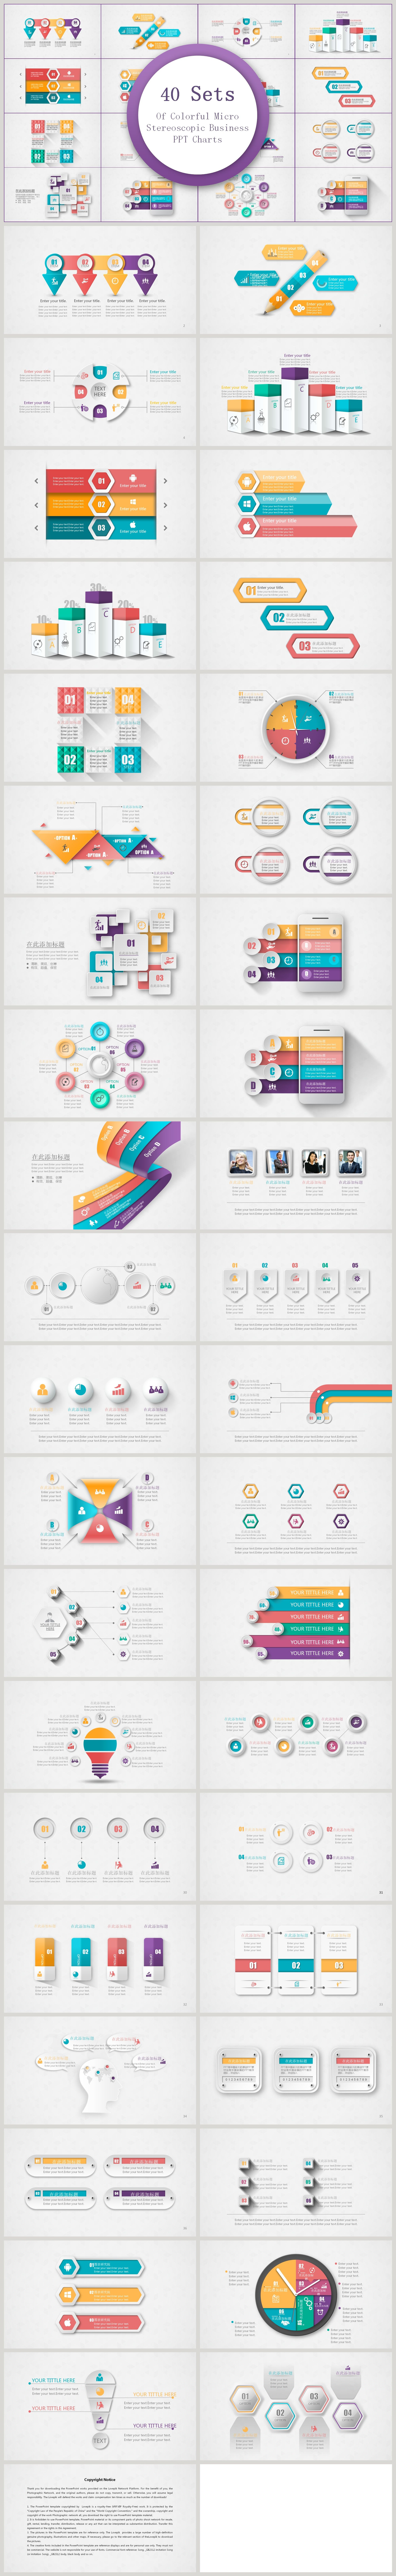 40 Sets Of Micro Stereoscopic Business Template Business Template Web App Design Business Ppt Templates